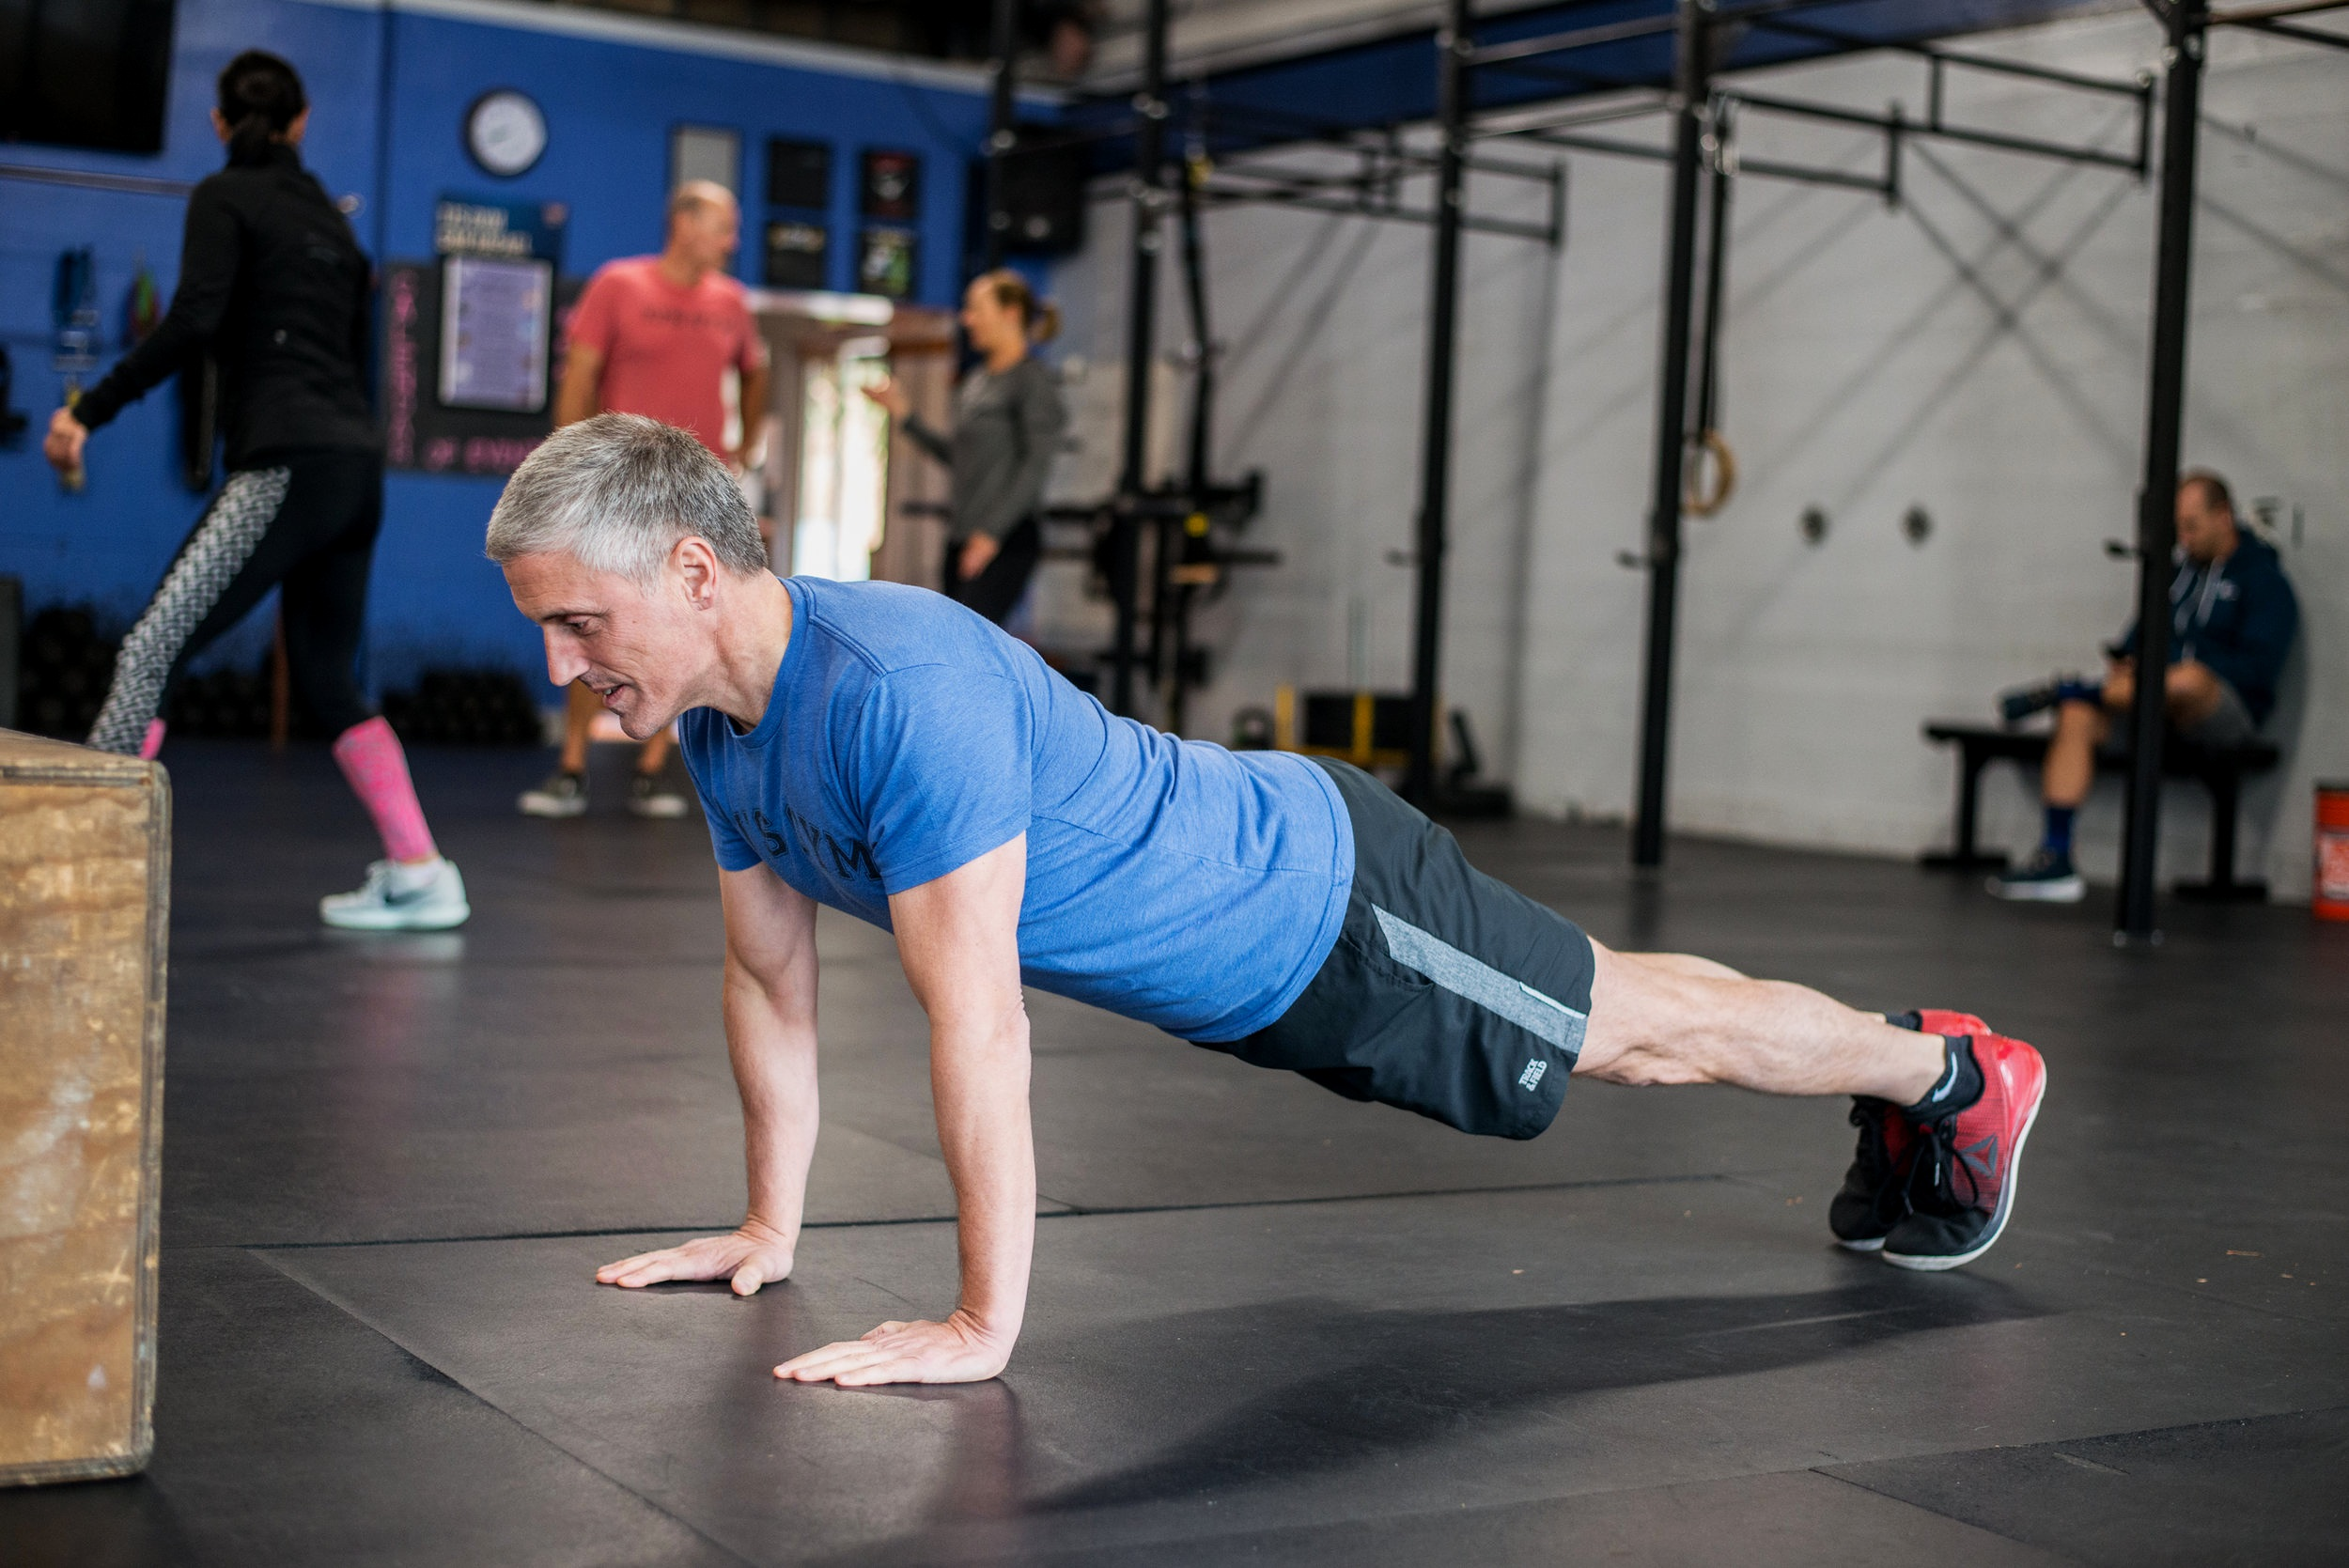 Chris came to us a few years back, suffering from chronic back pain. - He's been pain-free for quite some time. His is a great story, mostly because Chris is a stellar human being but also because his progress and health are the result of hard work and consistency through the years.